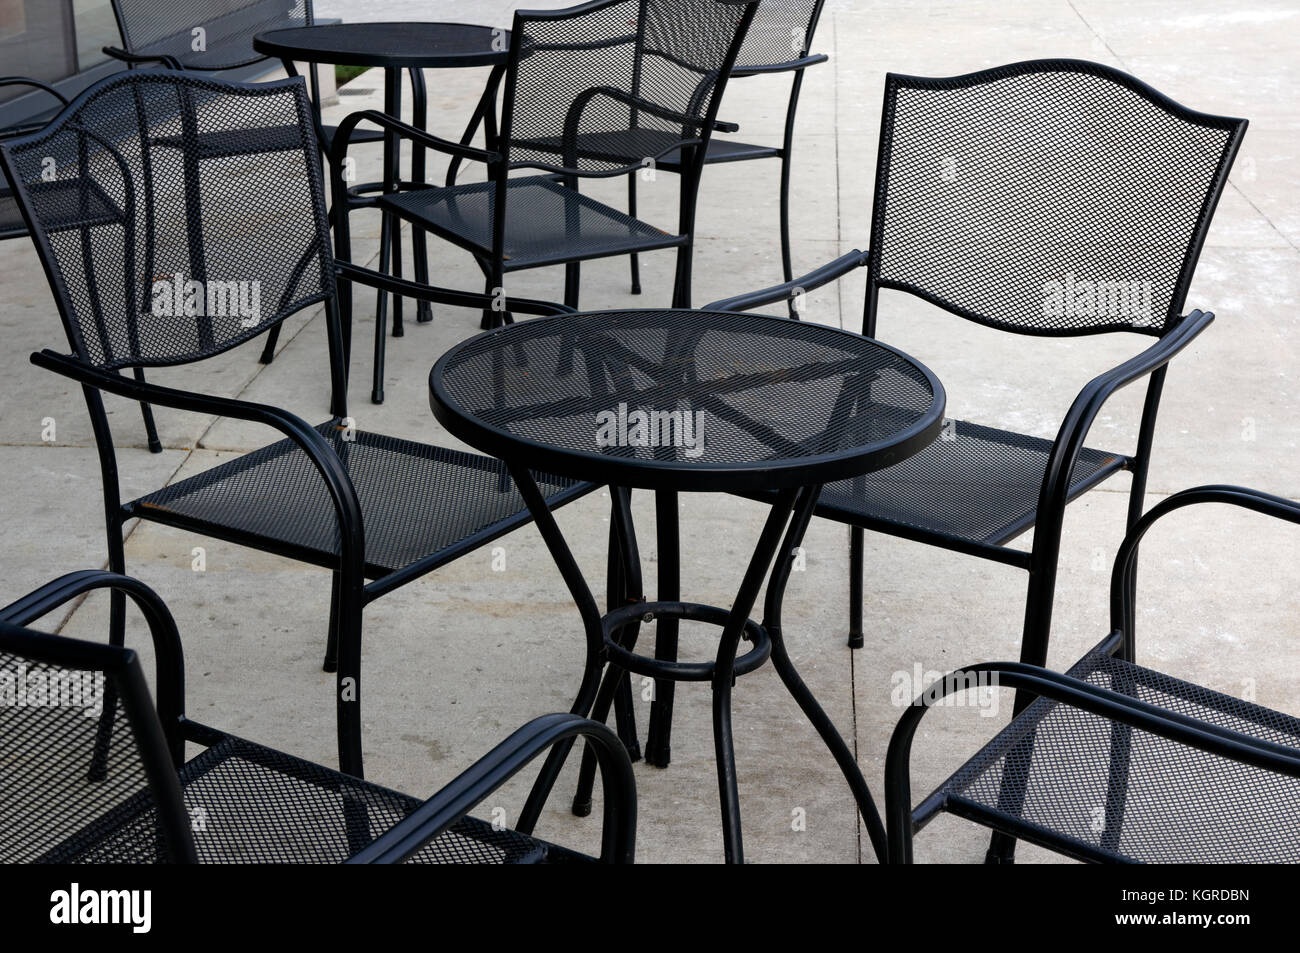 Fancy black metal outdoor furniture chairs and tables stock image